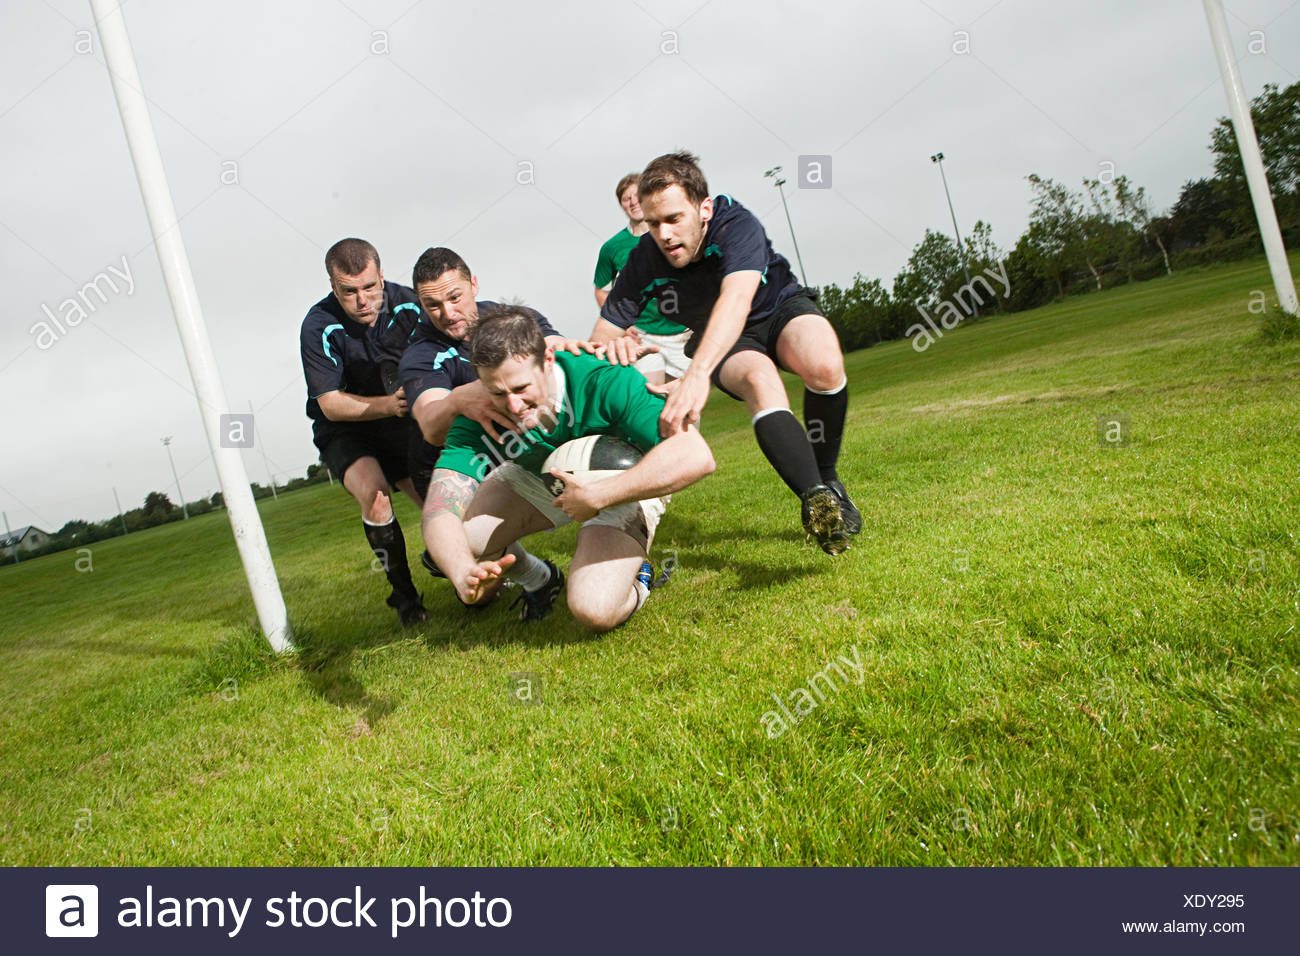 Rugby game in action - Stock Image